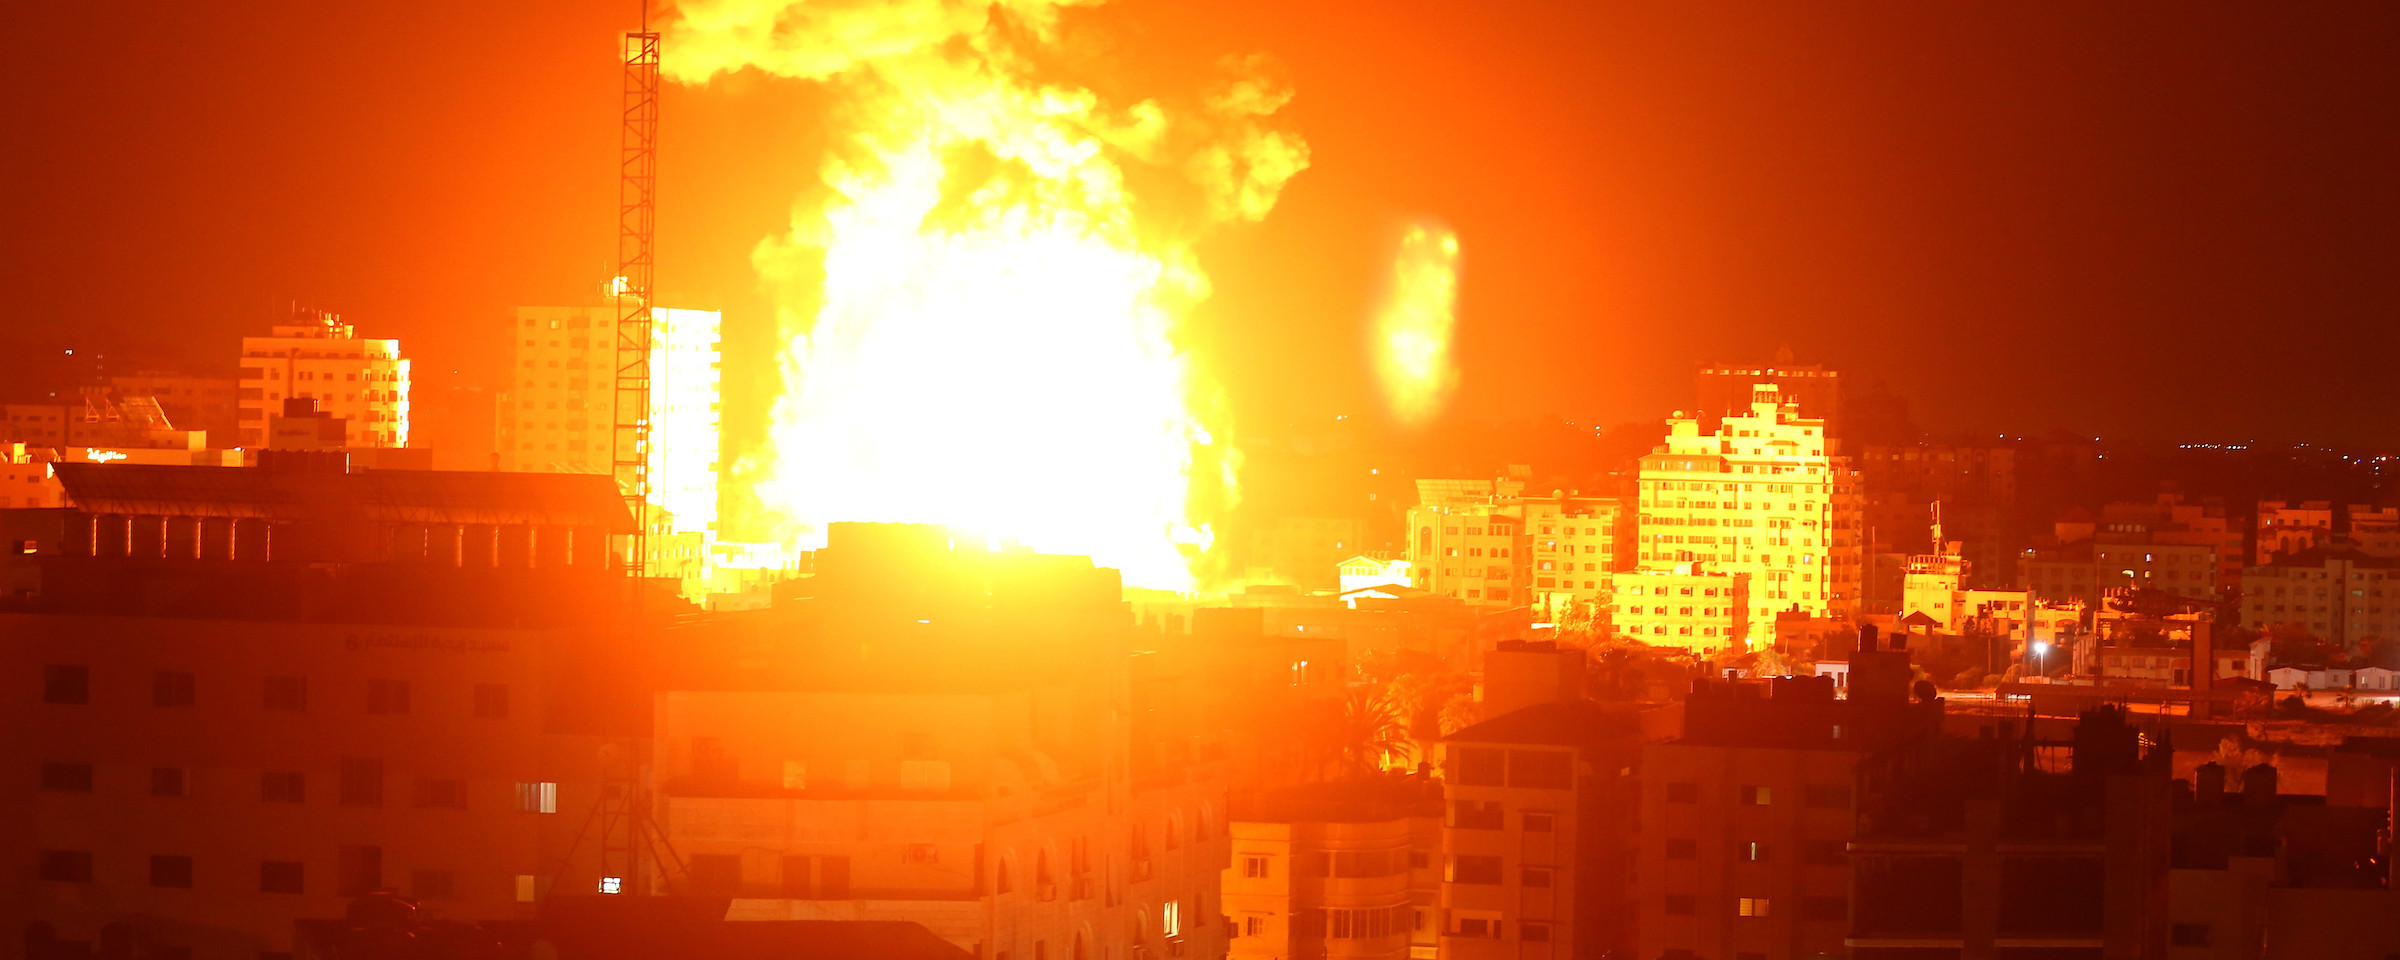 Landscape view of a massive fireball over a city skyline at night